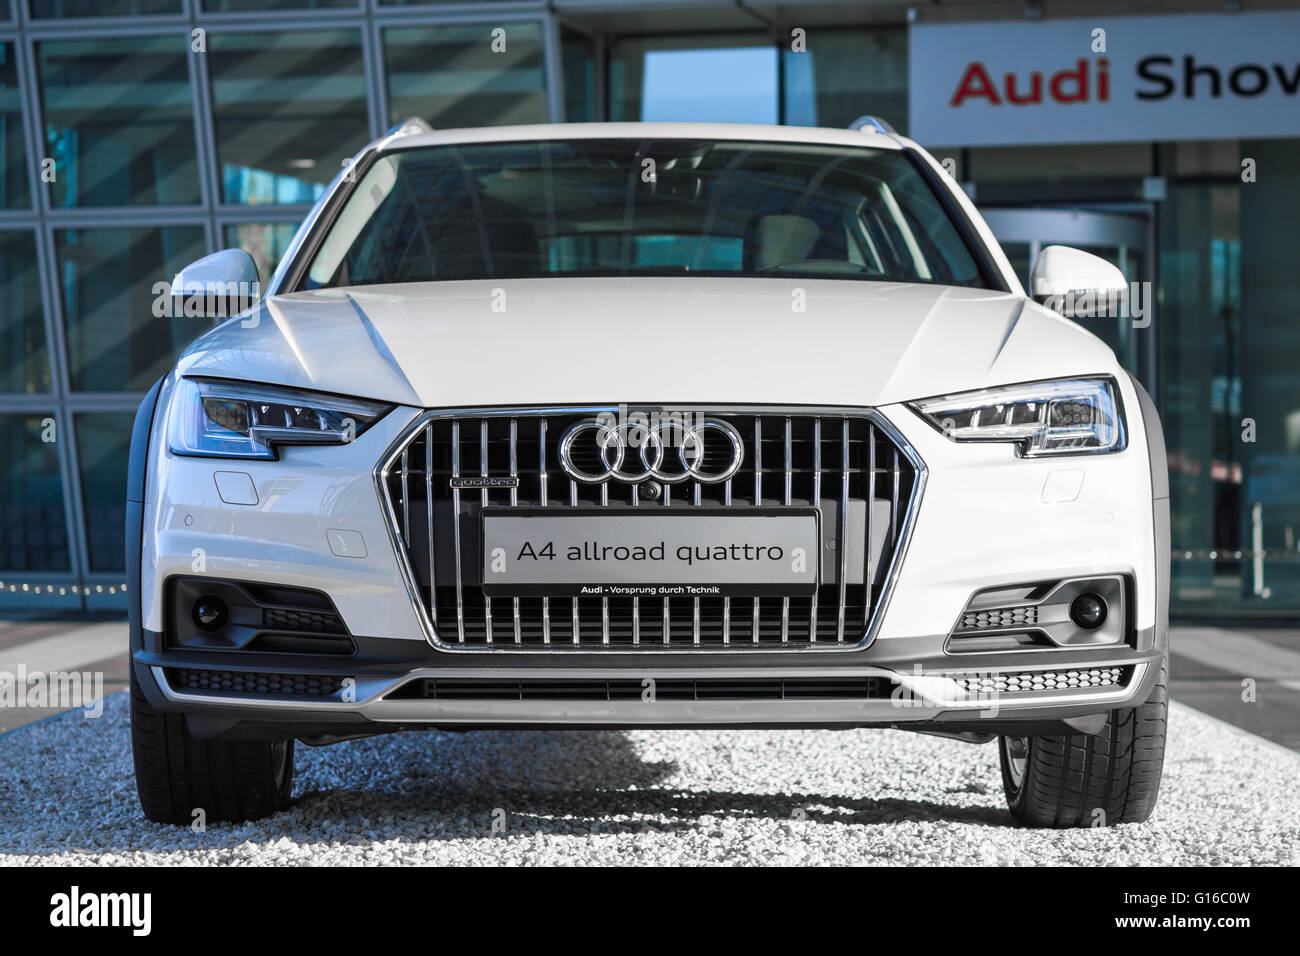 Audi A4 Allroad Quattro Is New Modern SUV Car Model With Four Wheel Drive  System And Powerful Diesel Engine.